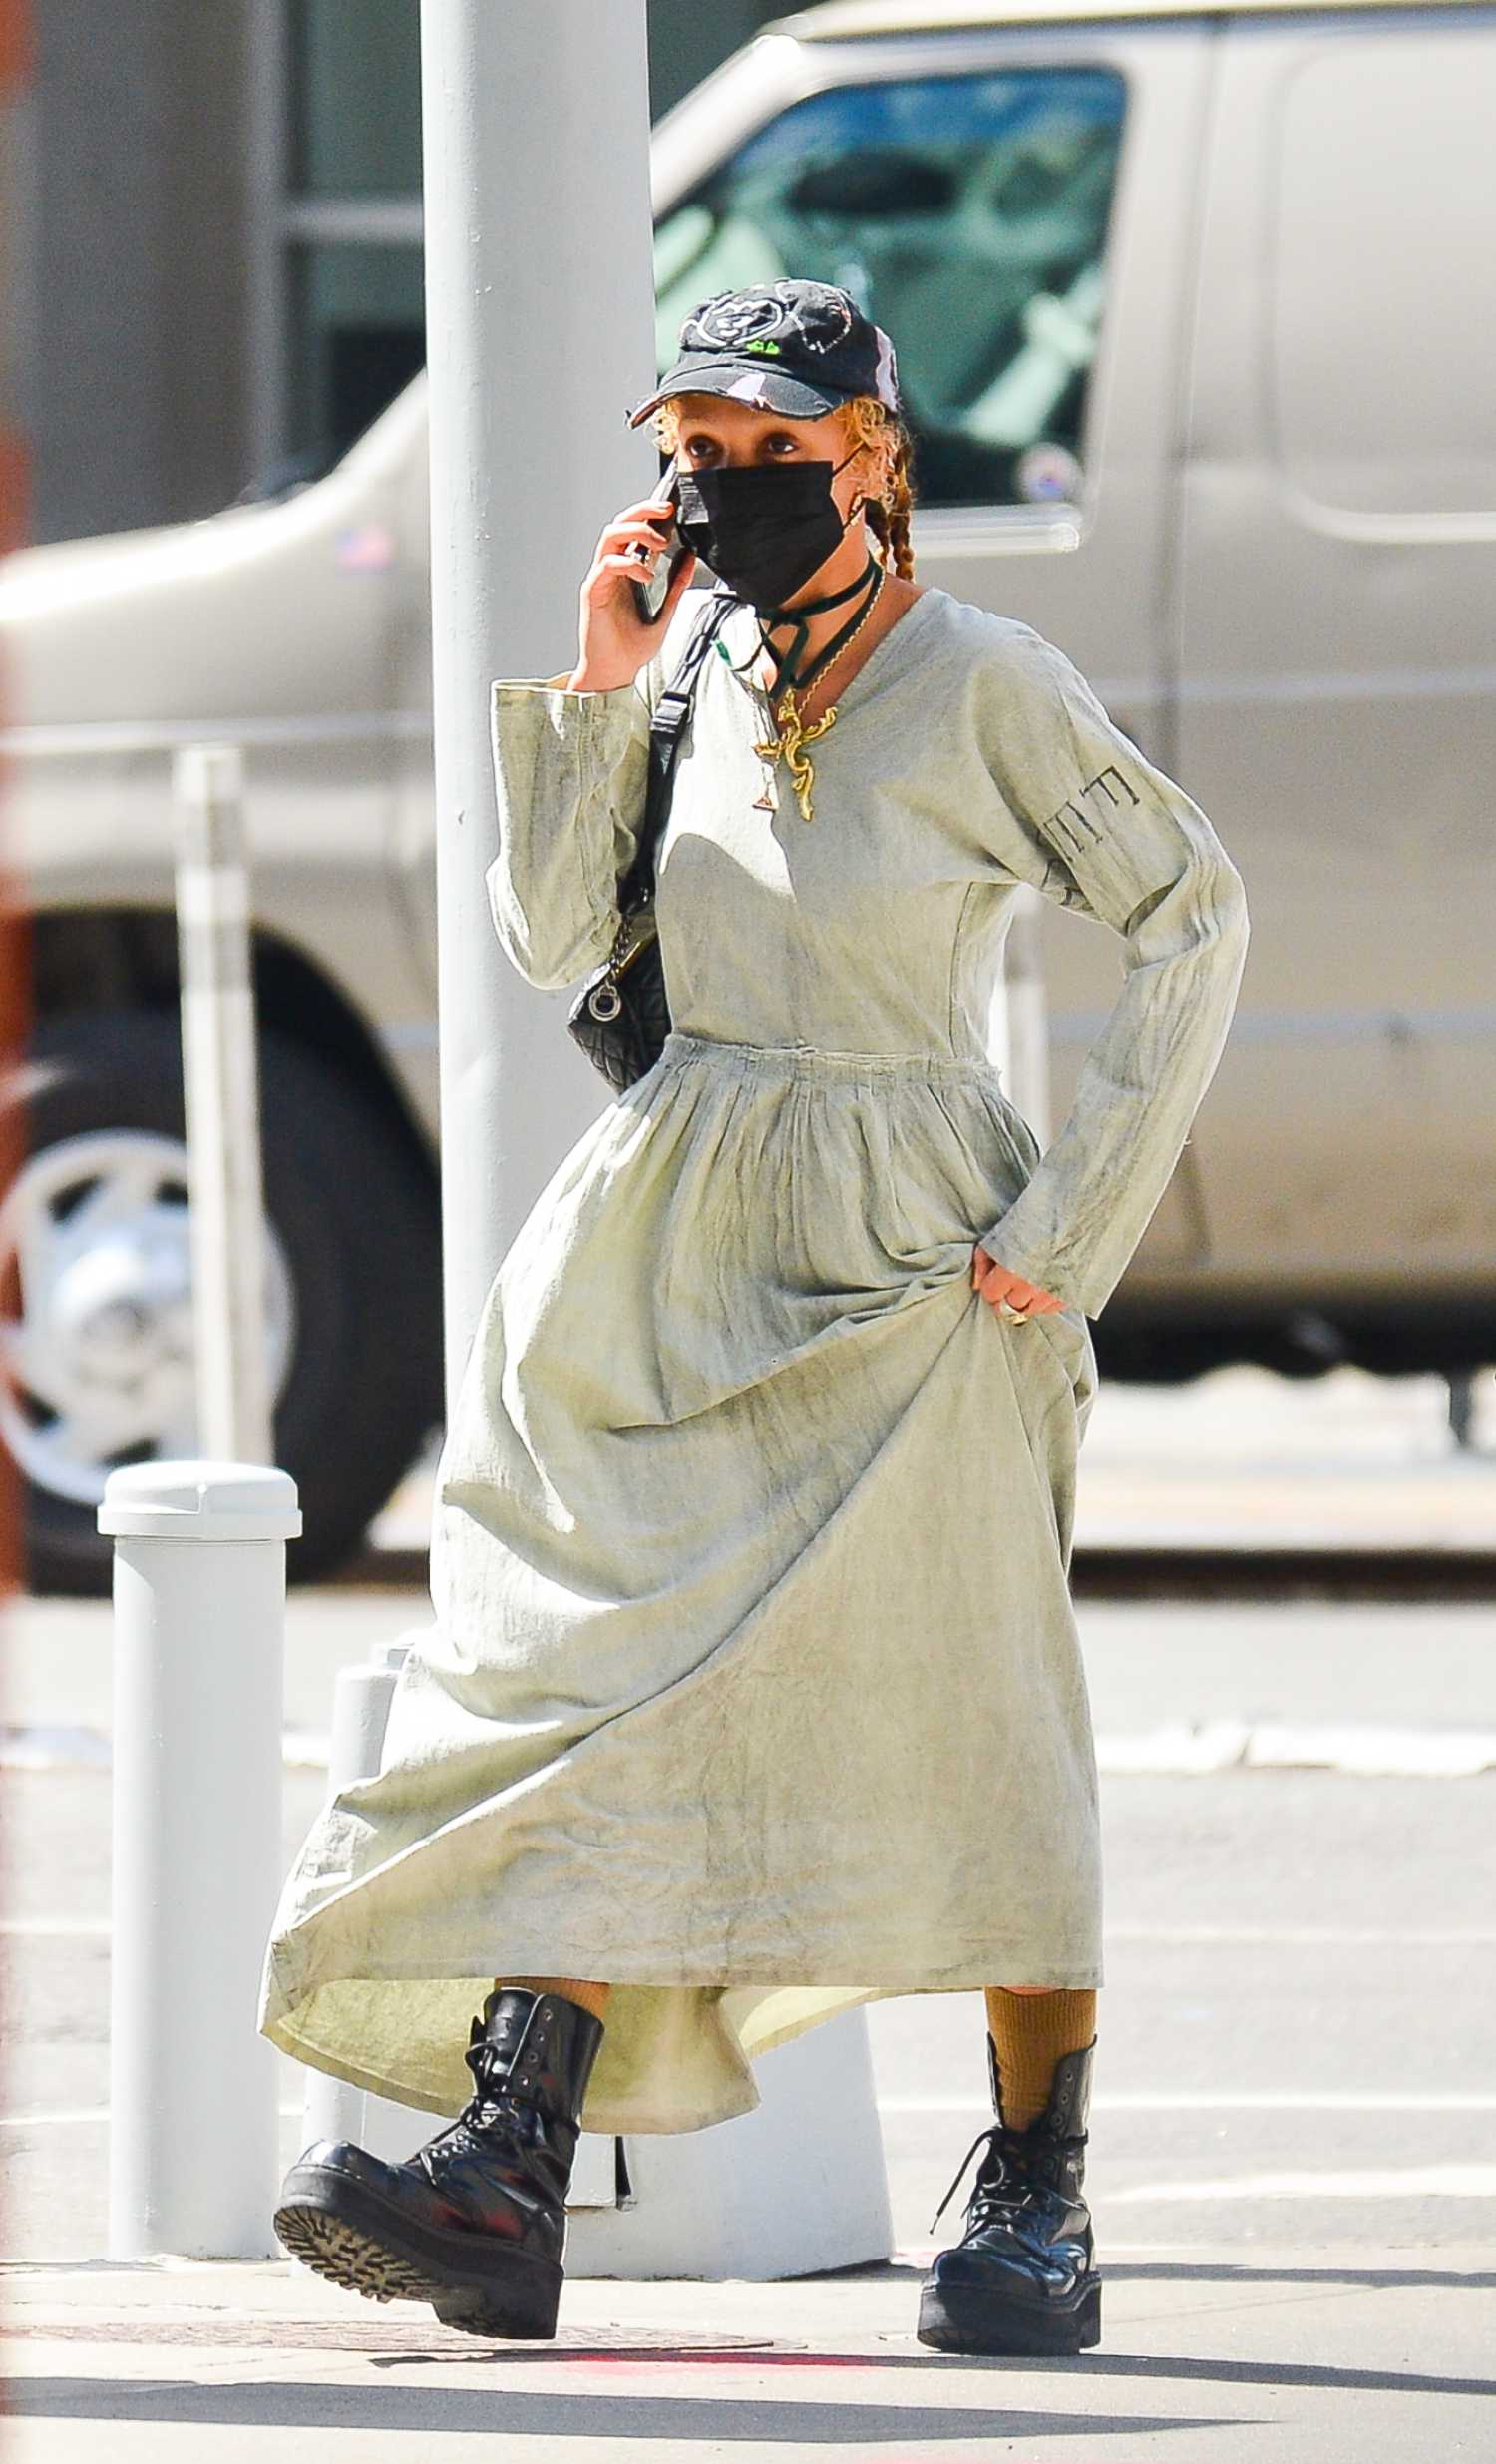 FKA Twigs in an Olive Dress Was Seen Out in New York – Celeb Donut